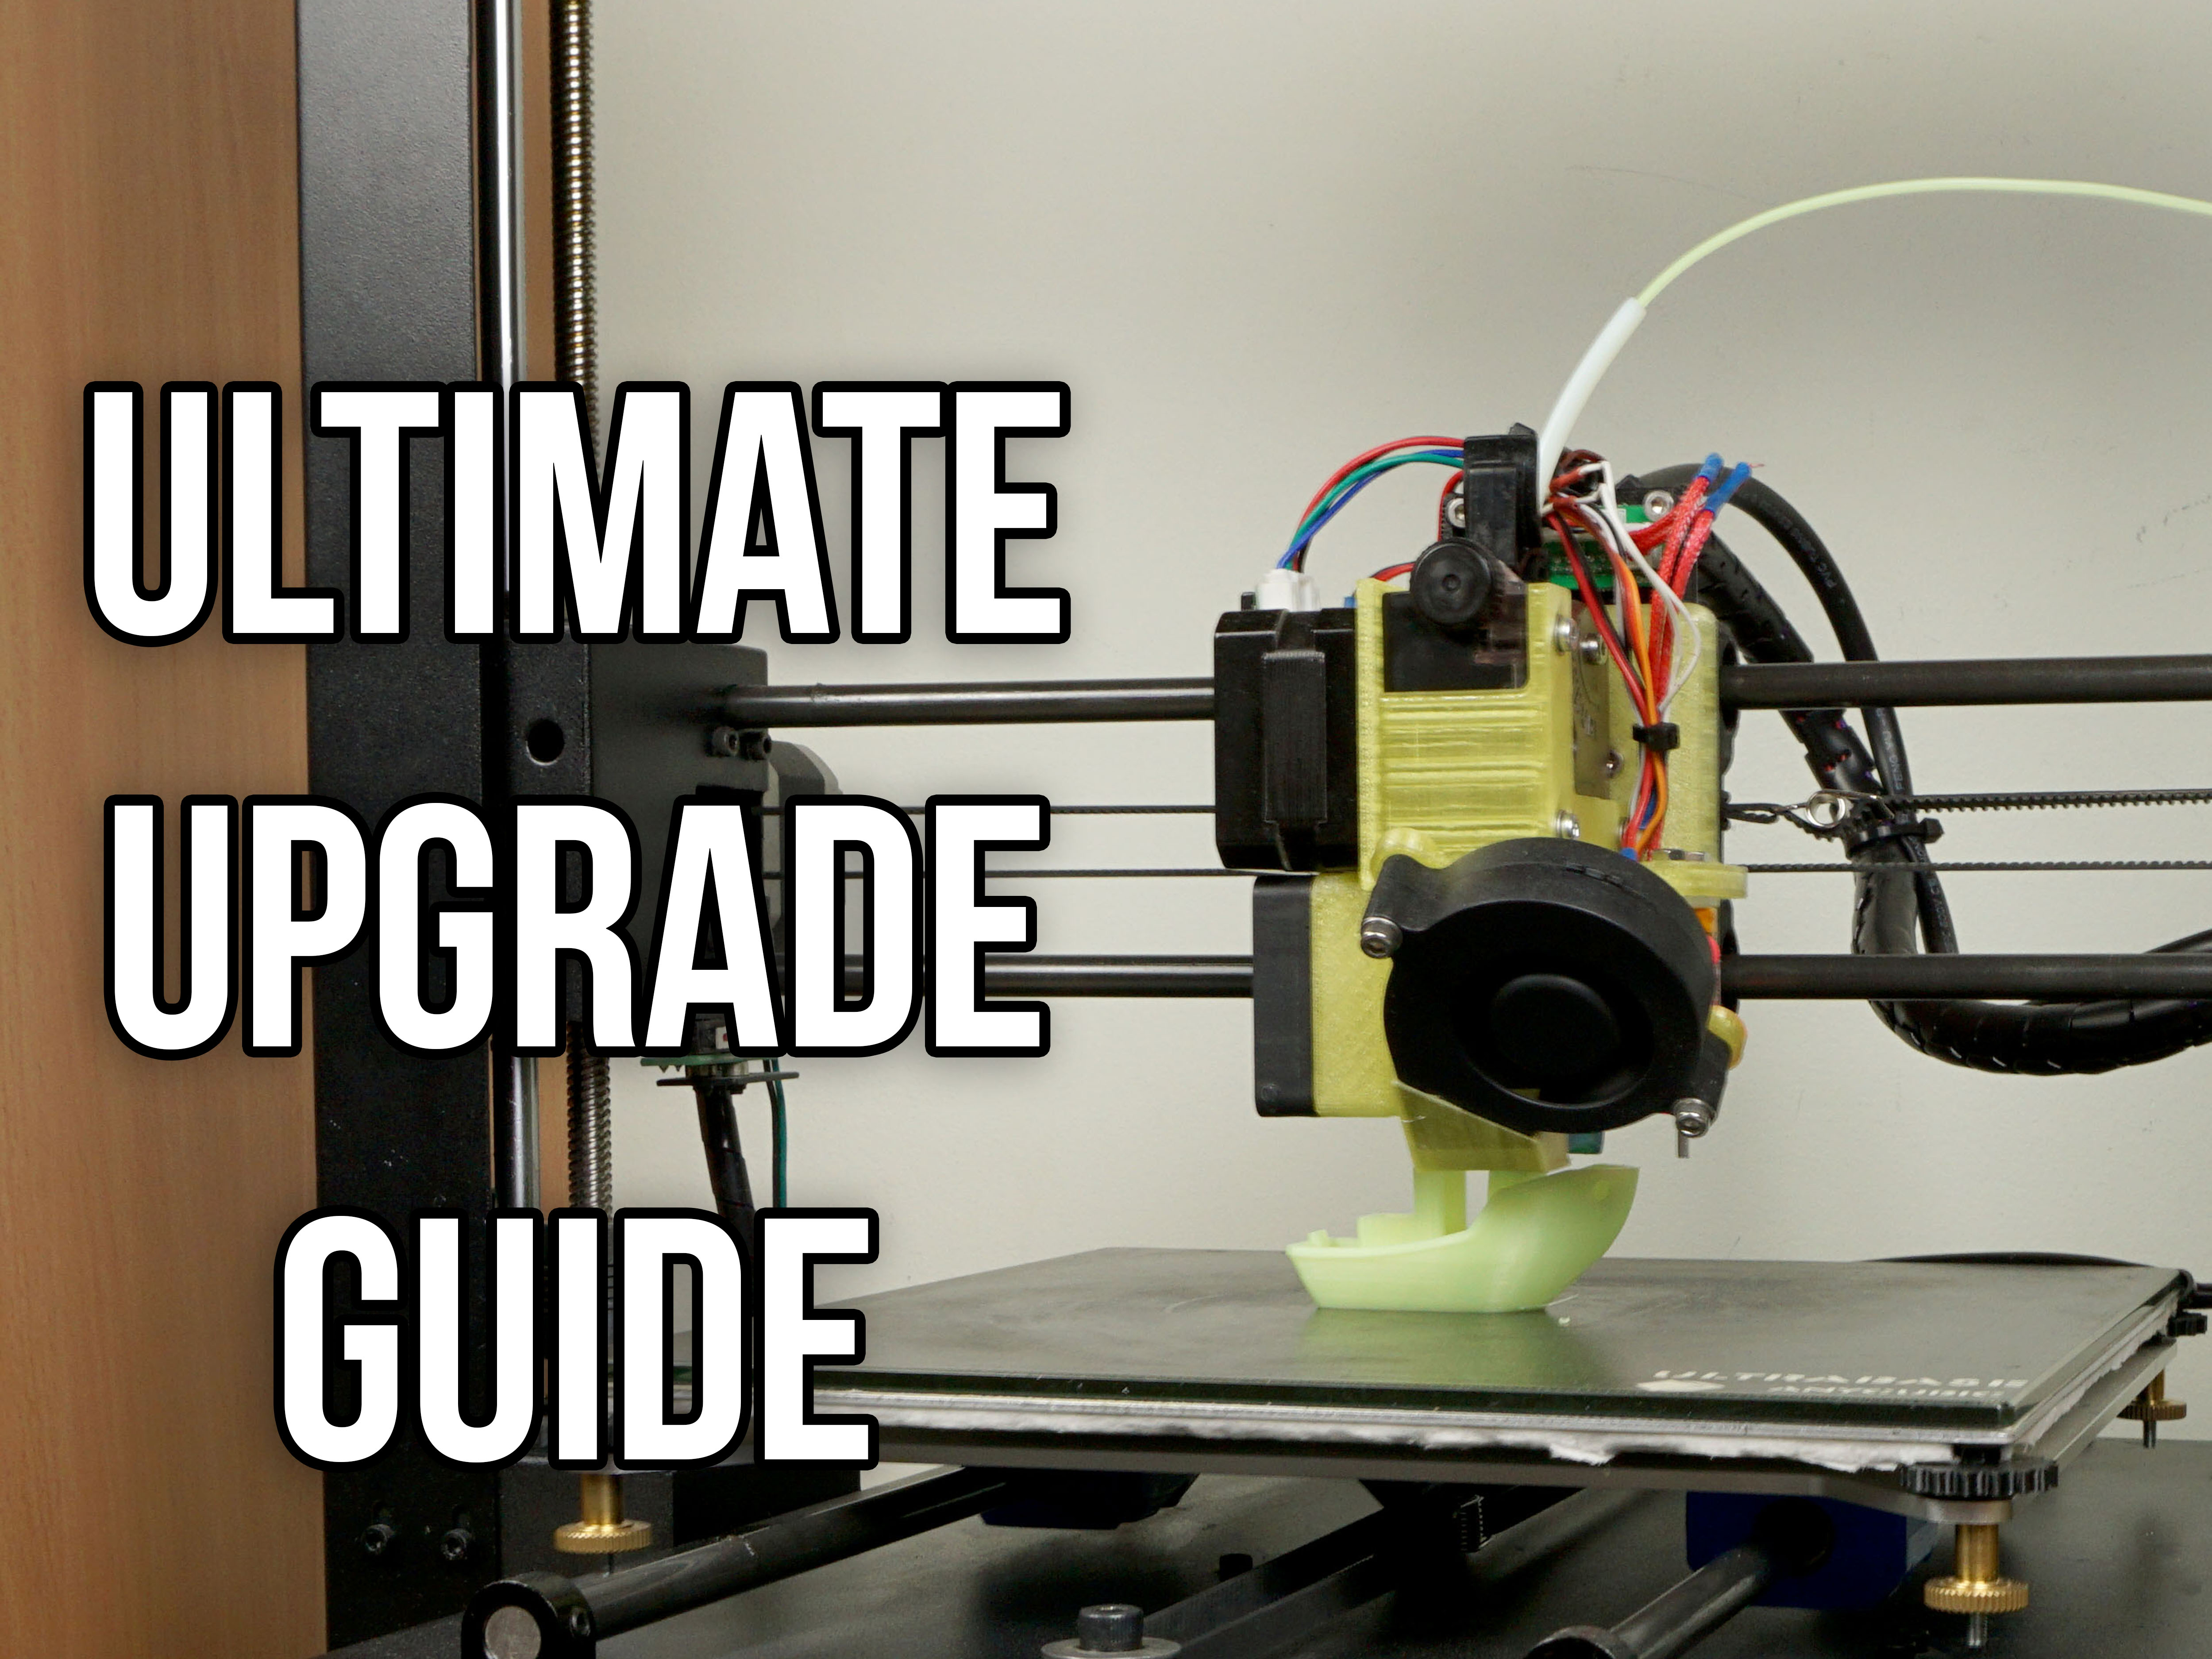 Anycubic I3 Mega ULTIMATE Upgrade Guide by petrzmax - Thingiverse